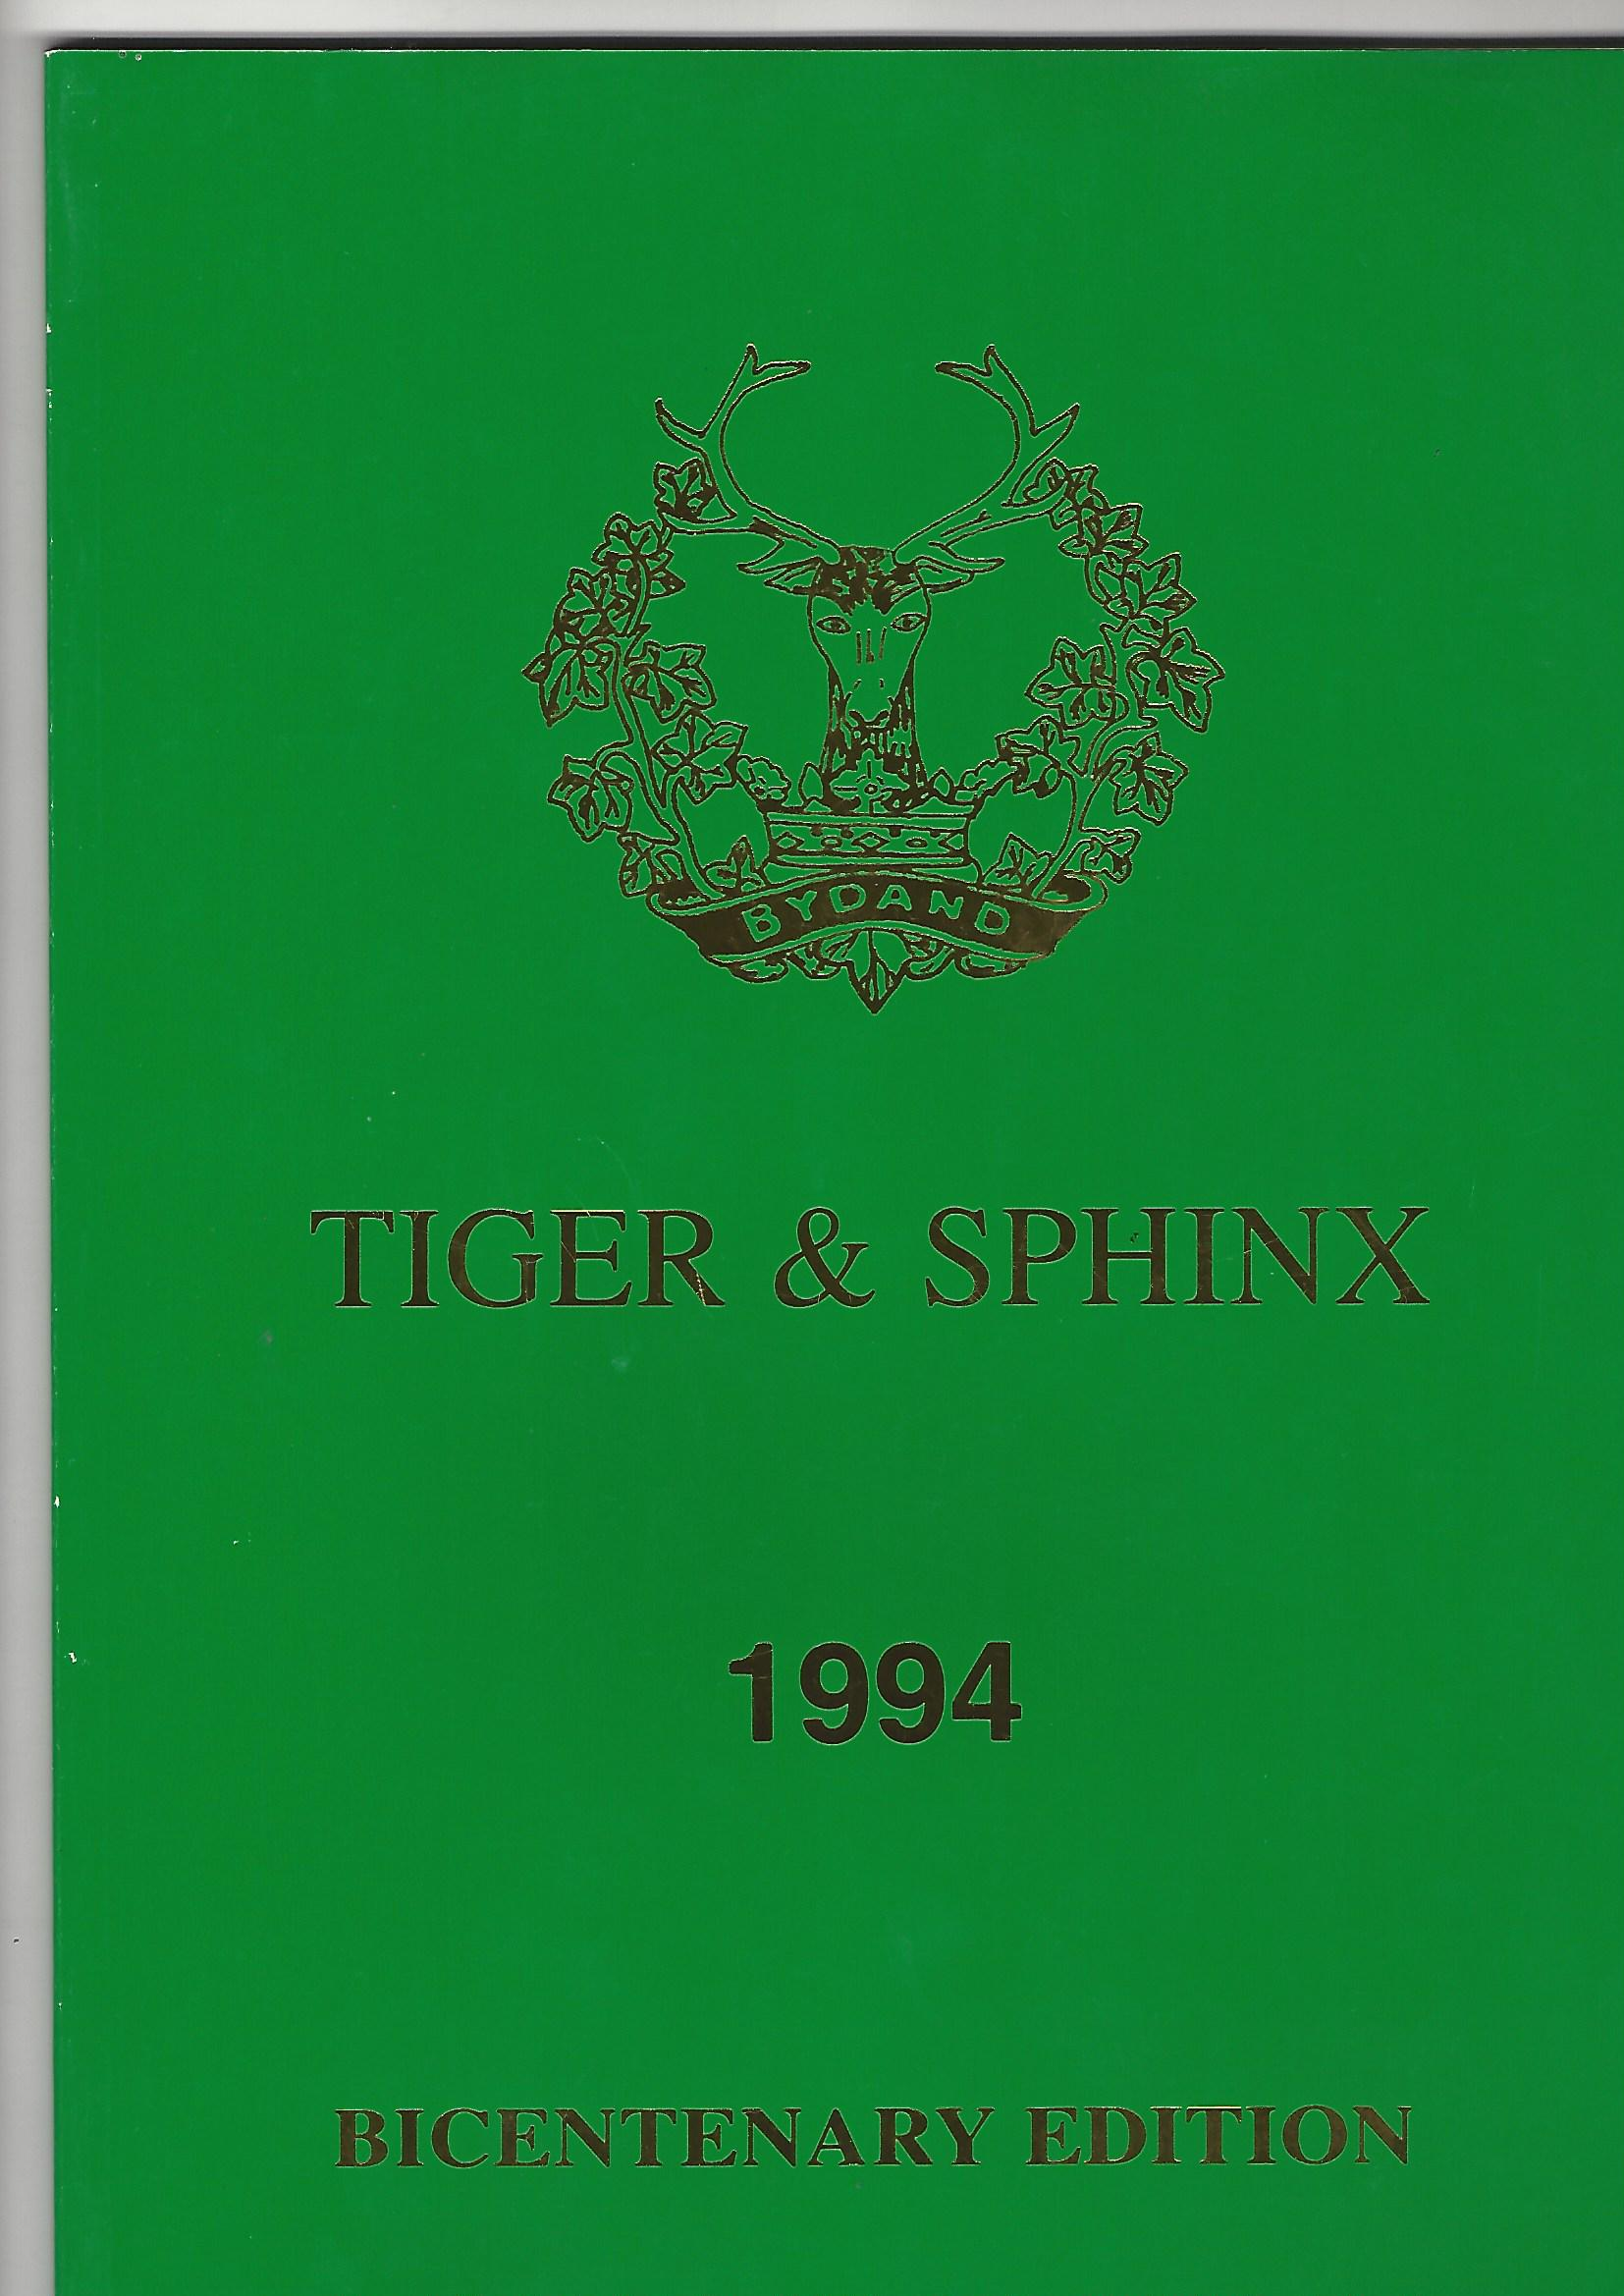 Image for Tiger & Sphinx: The Regimental Journal Of The Gordon Highlanders, 1994 Bicentenary Edition.